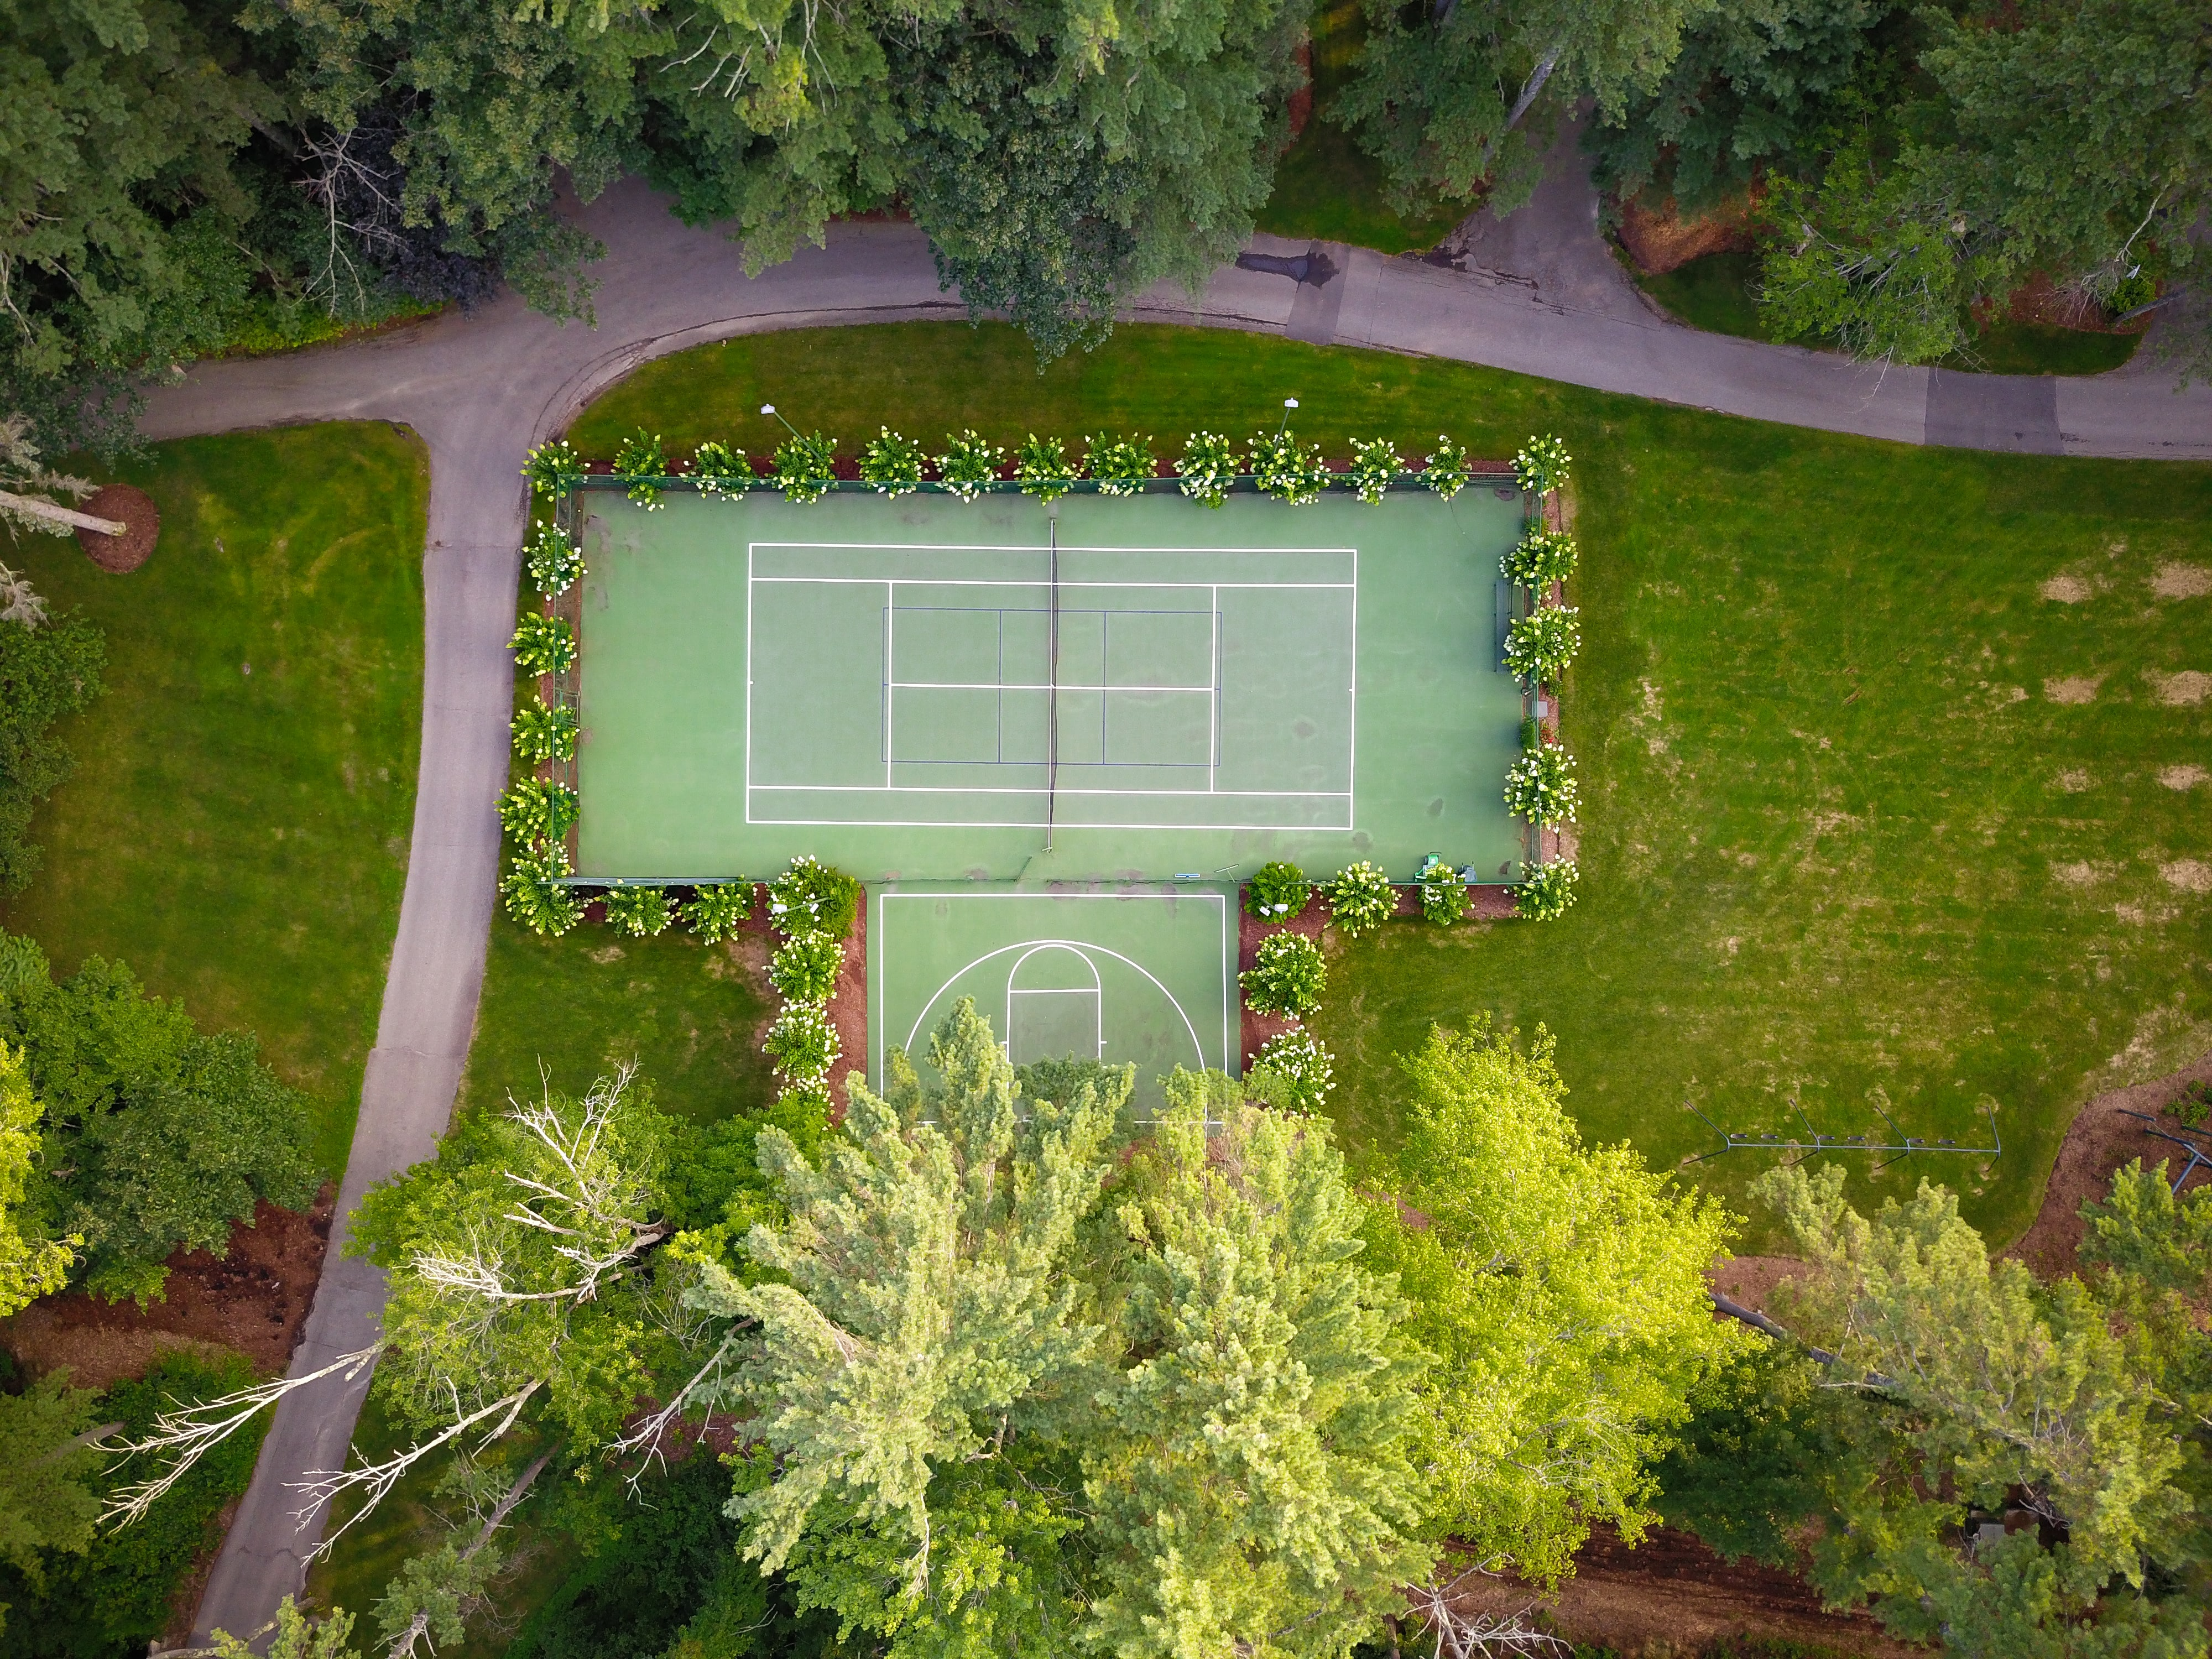 top view photo of tennis court